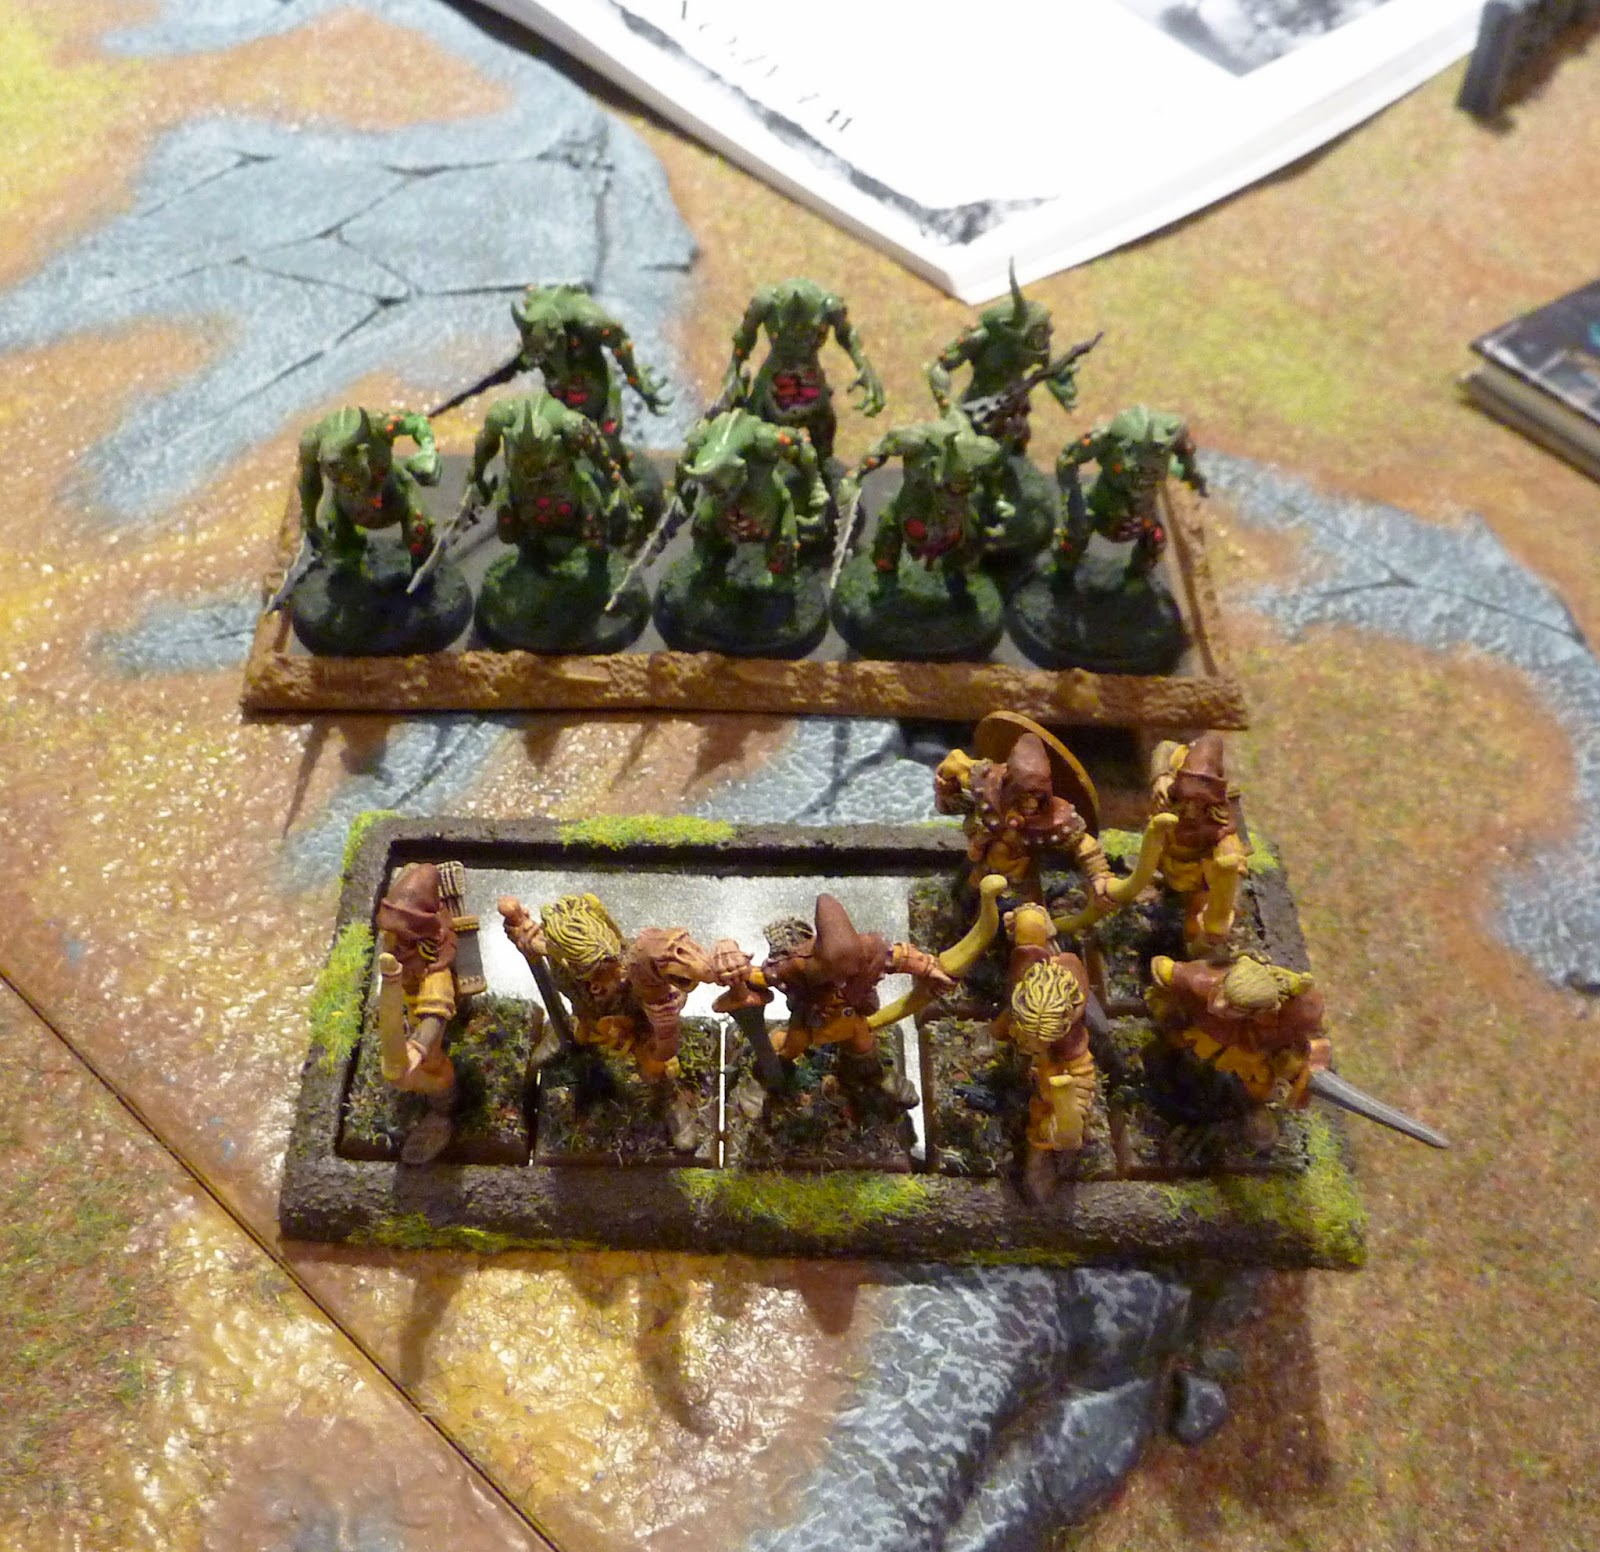 A Warhammer Fantasy Battle Report between Wood Elves and Skaven.